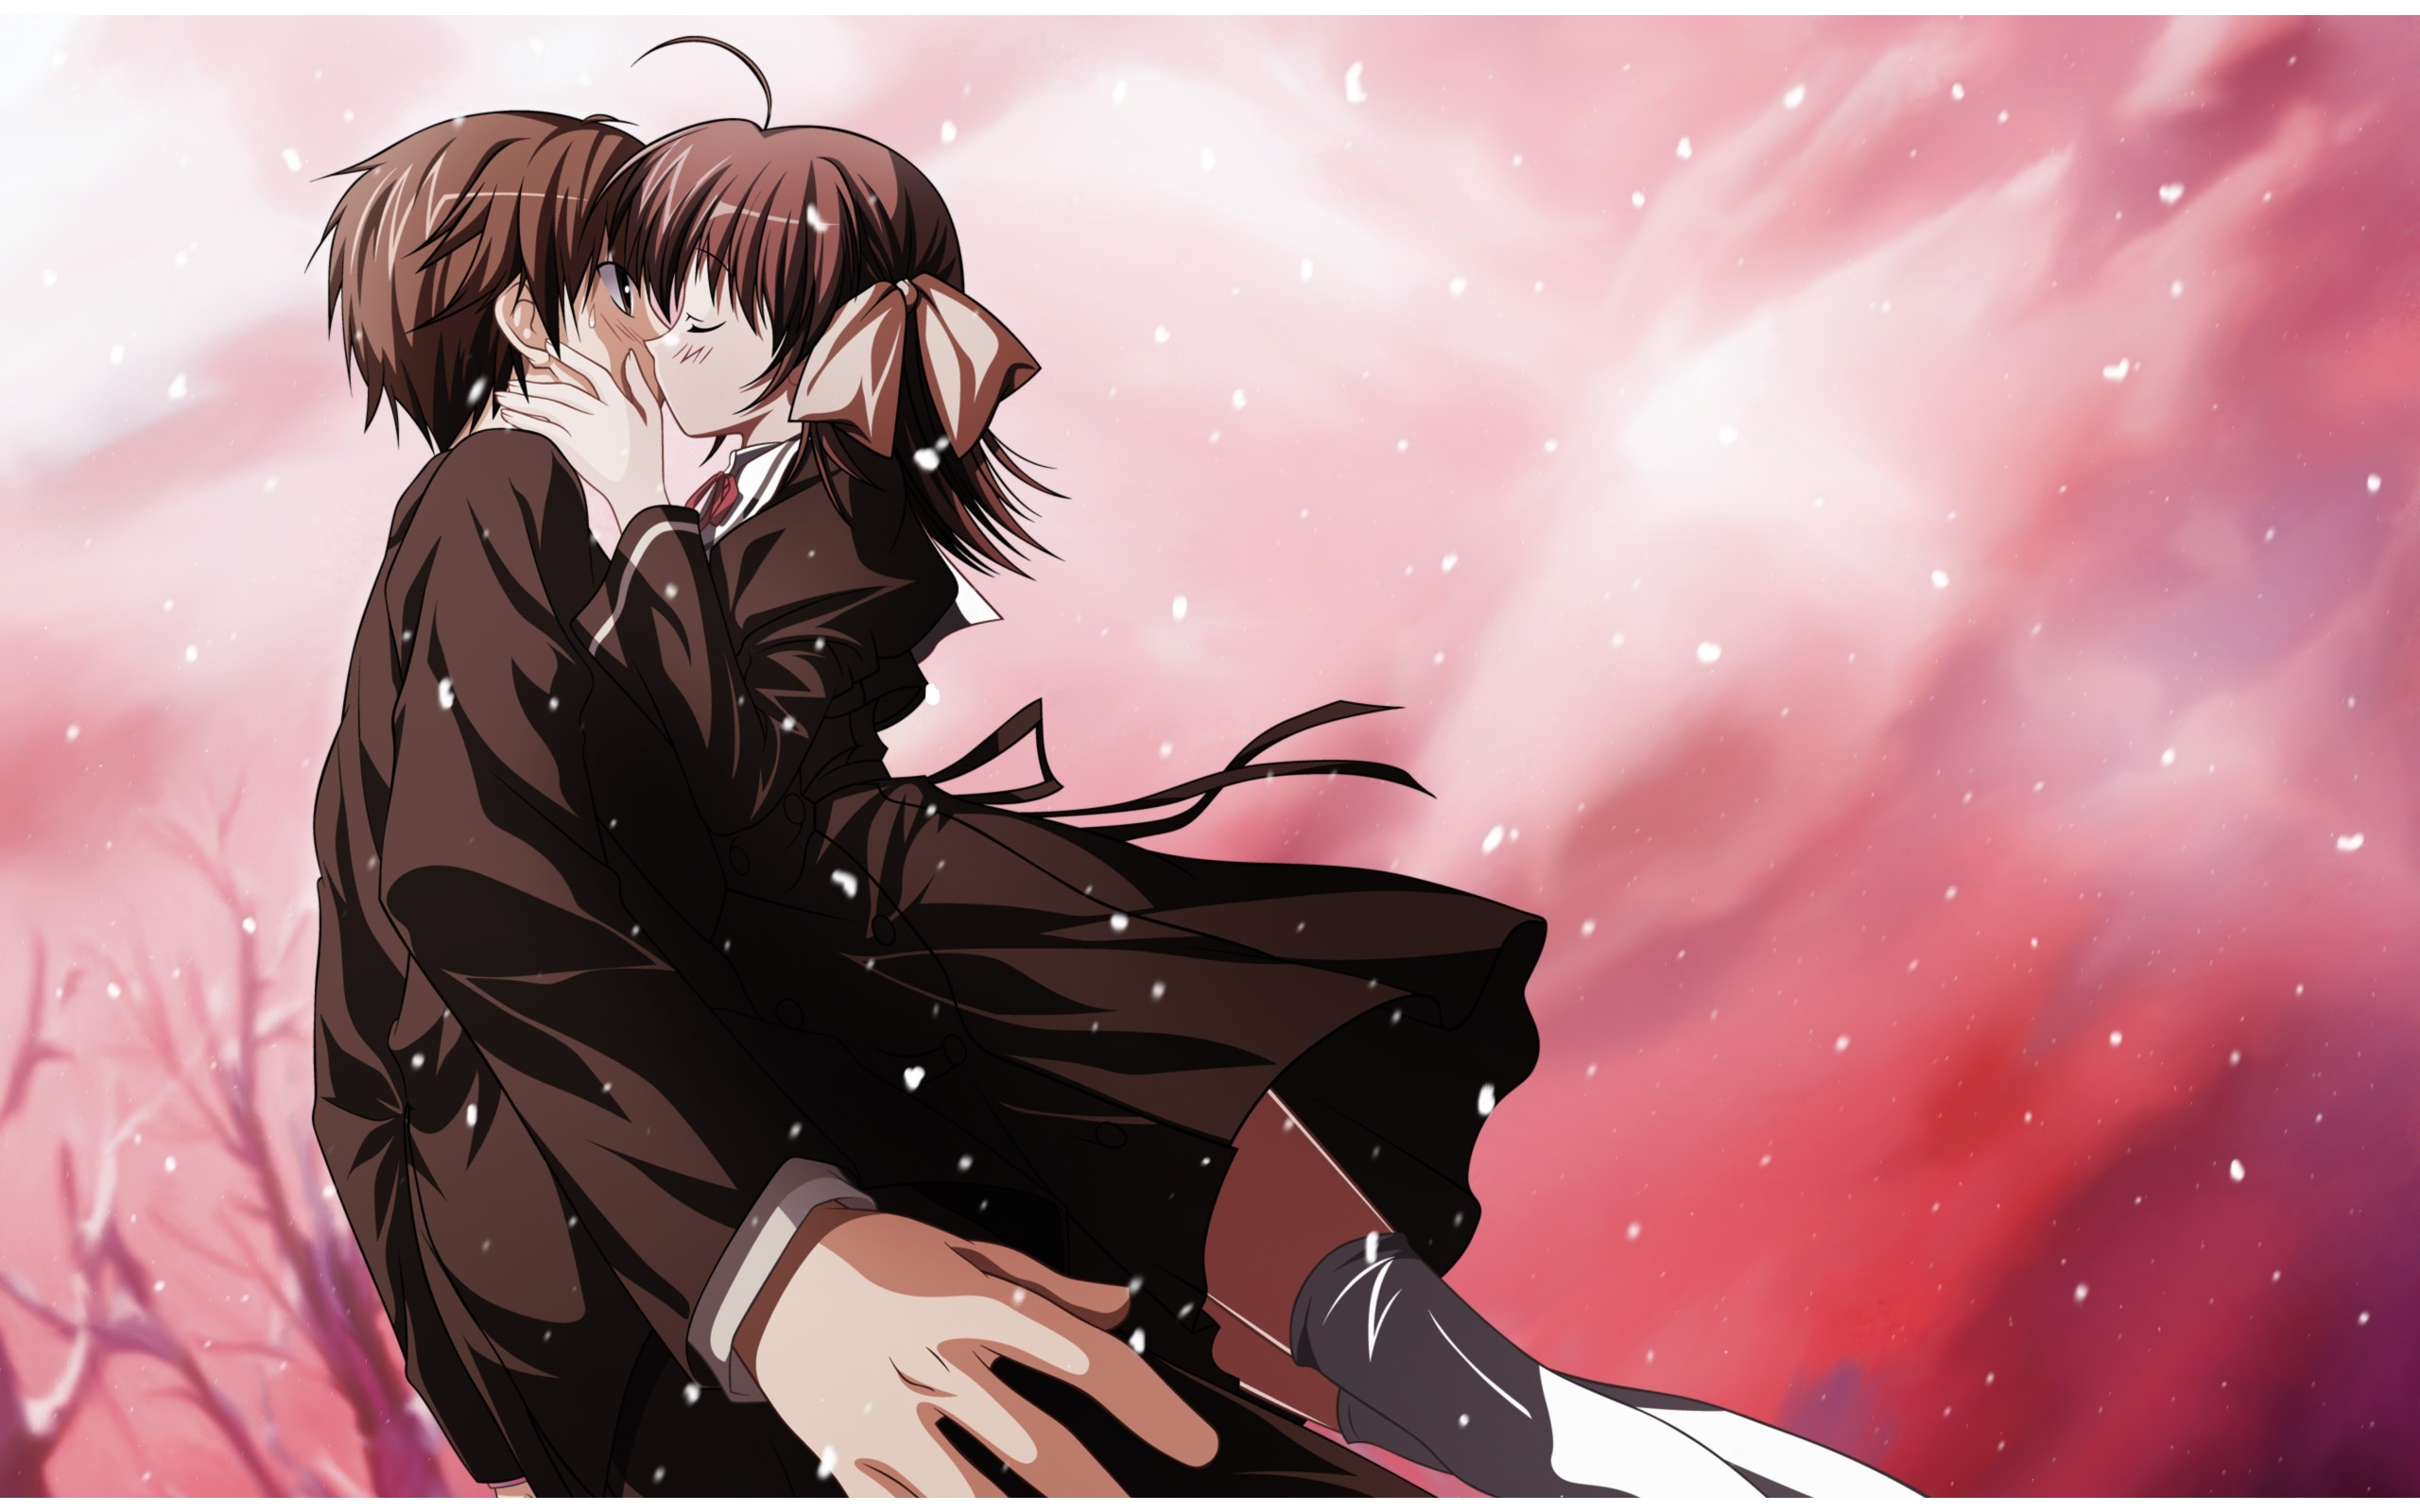 Anime Kiss Of Love Wallpapers   2560x1600   559194 2560x1600